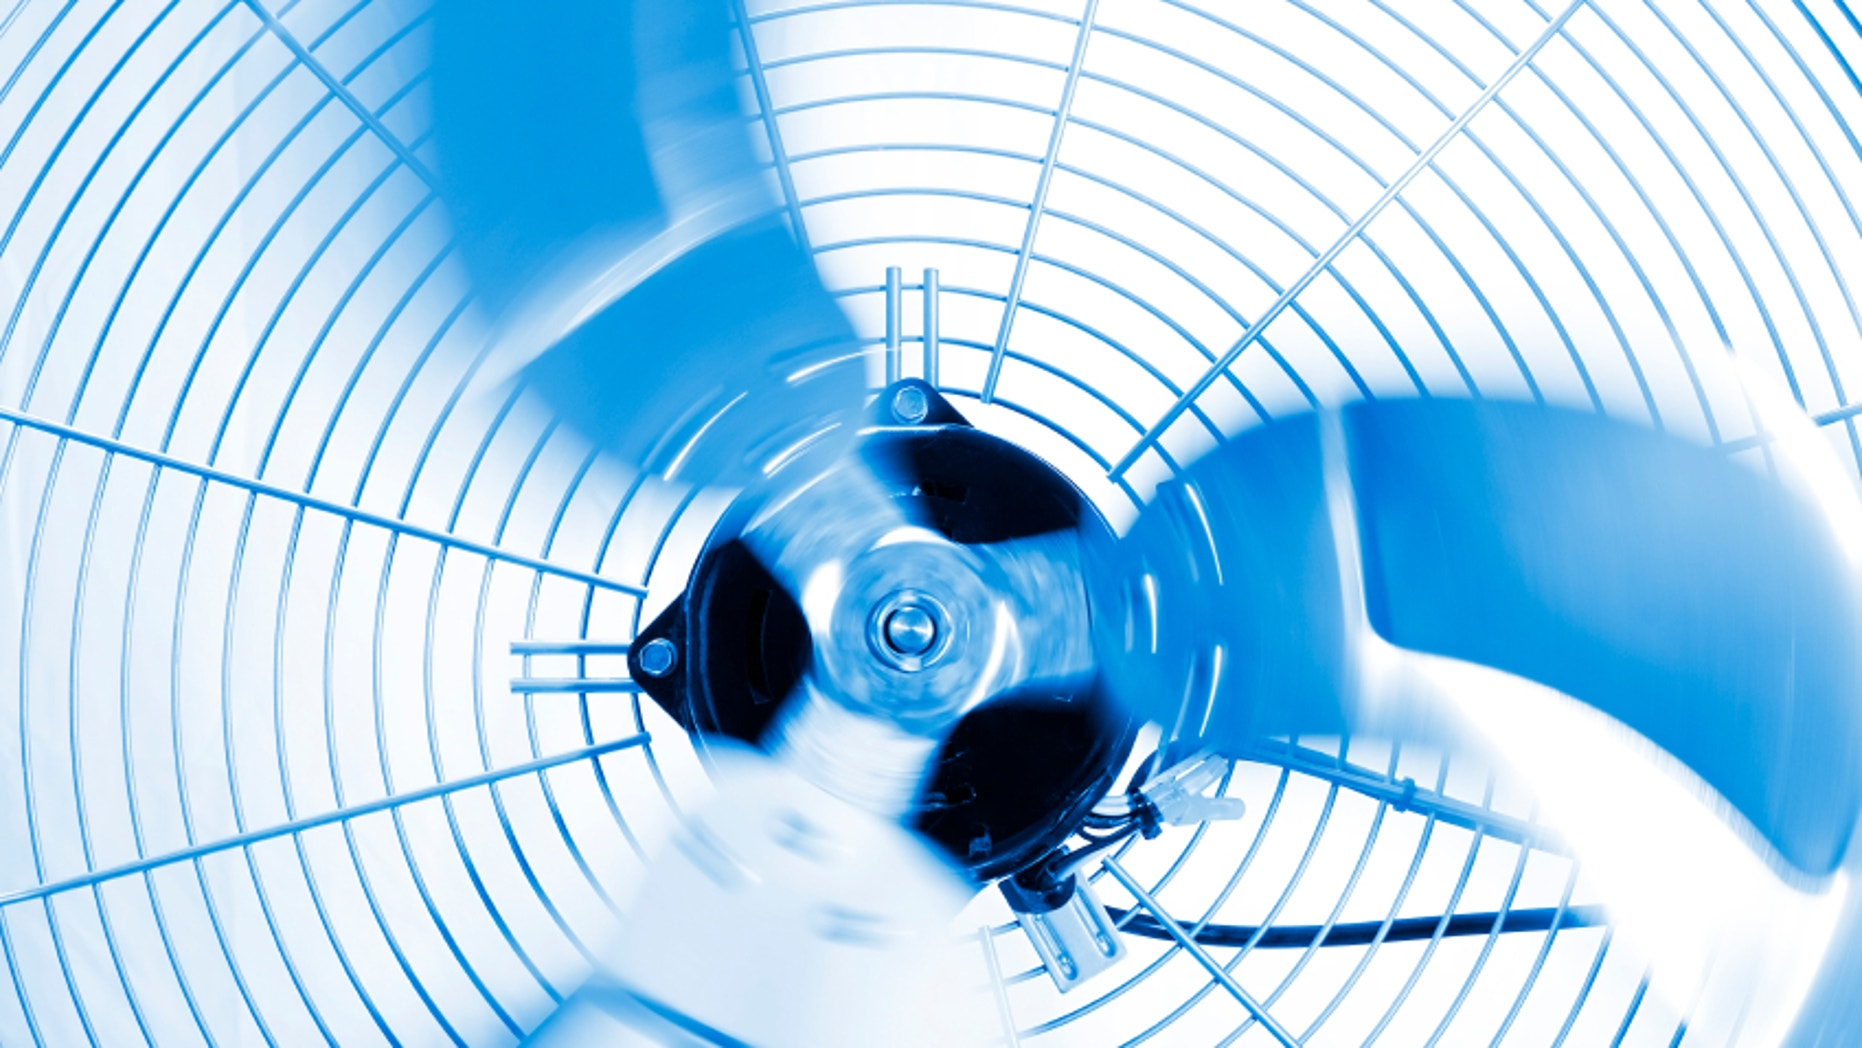 Close up shot of industrial fan while spinning